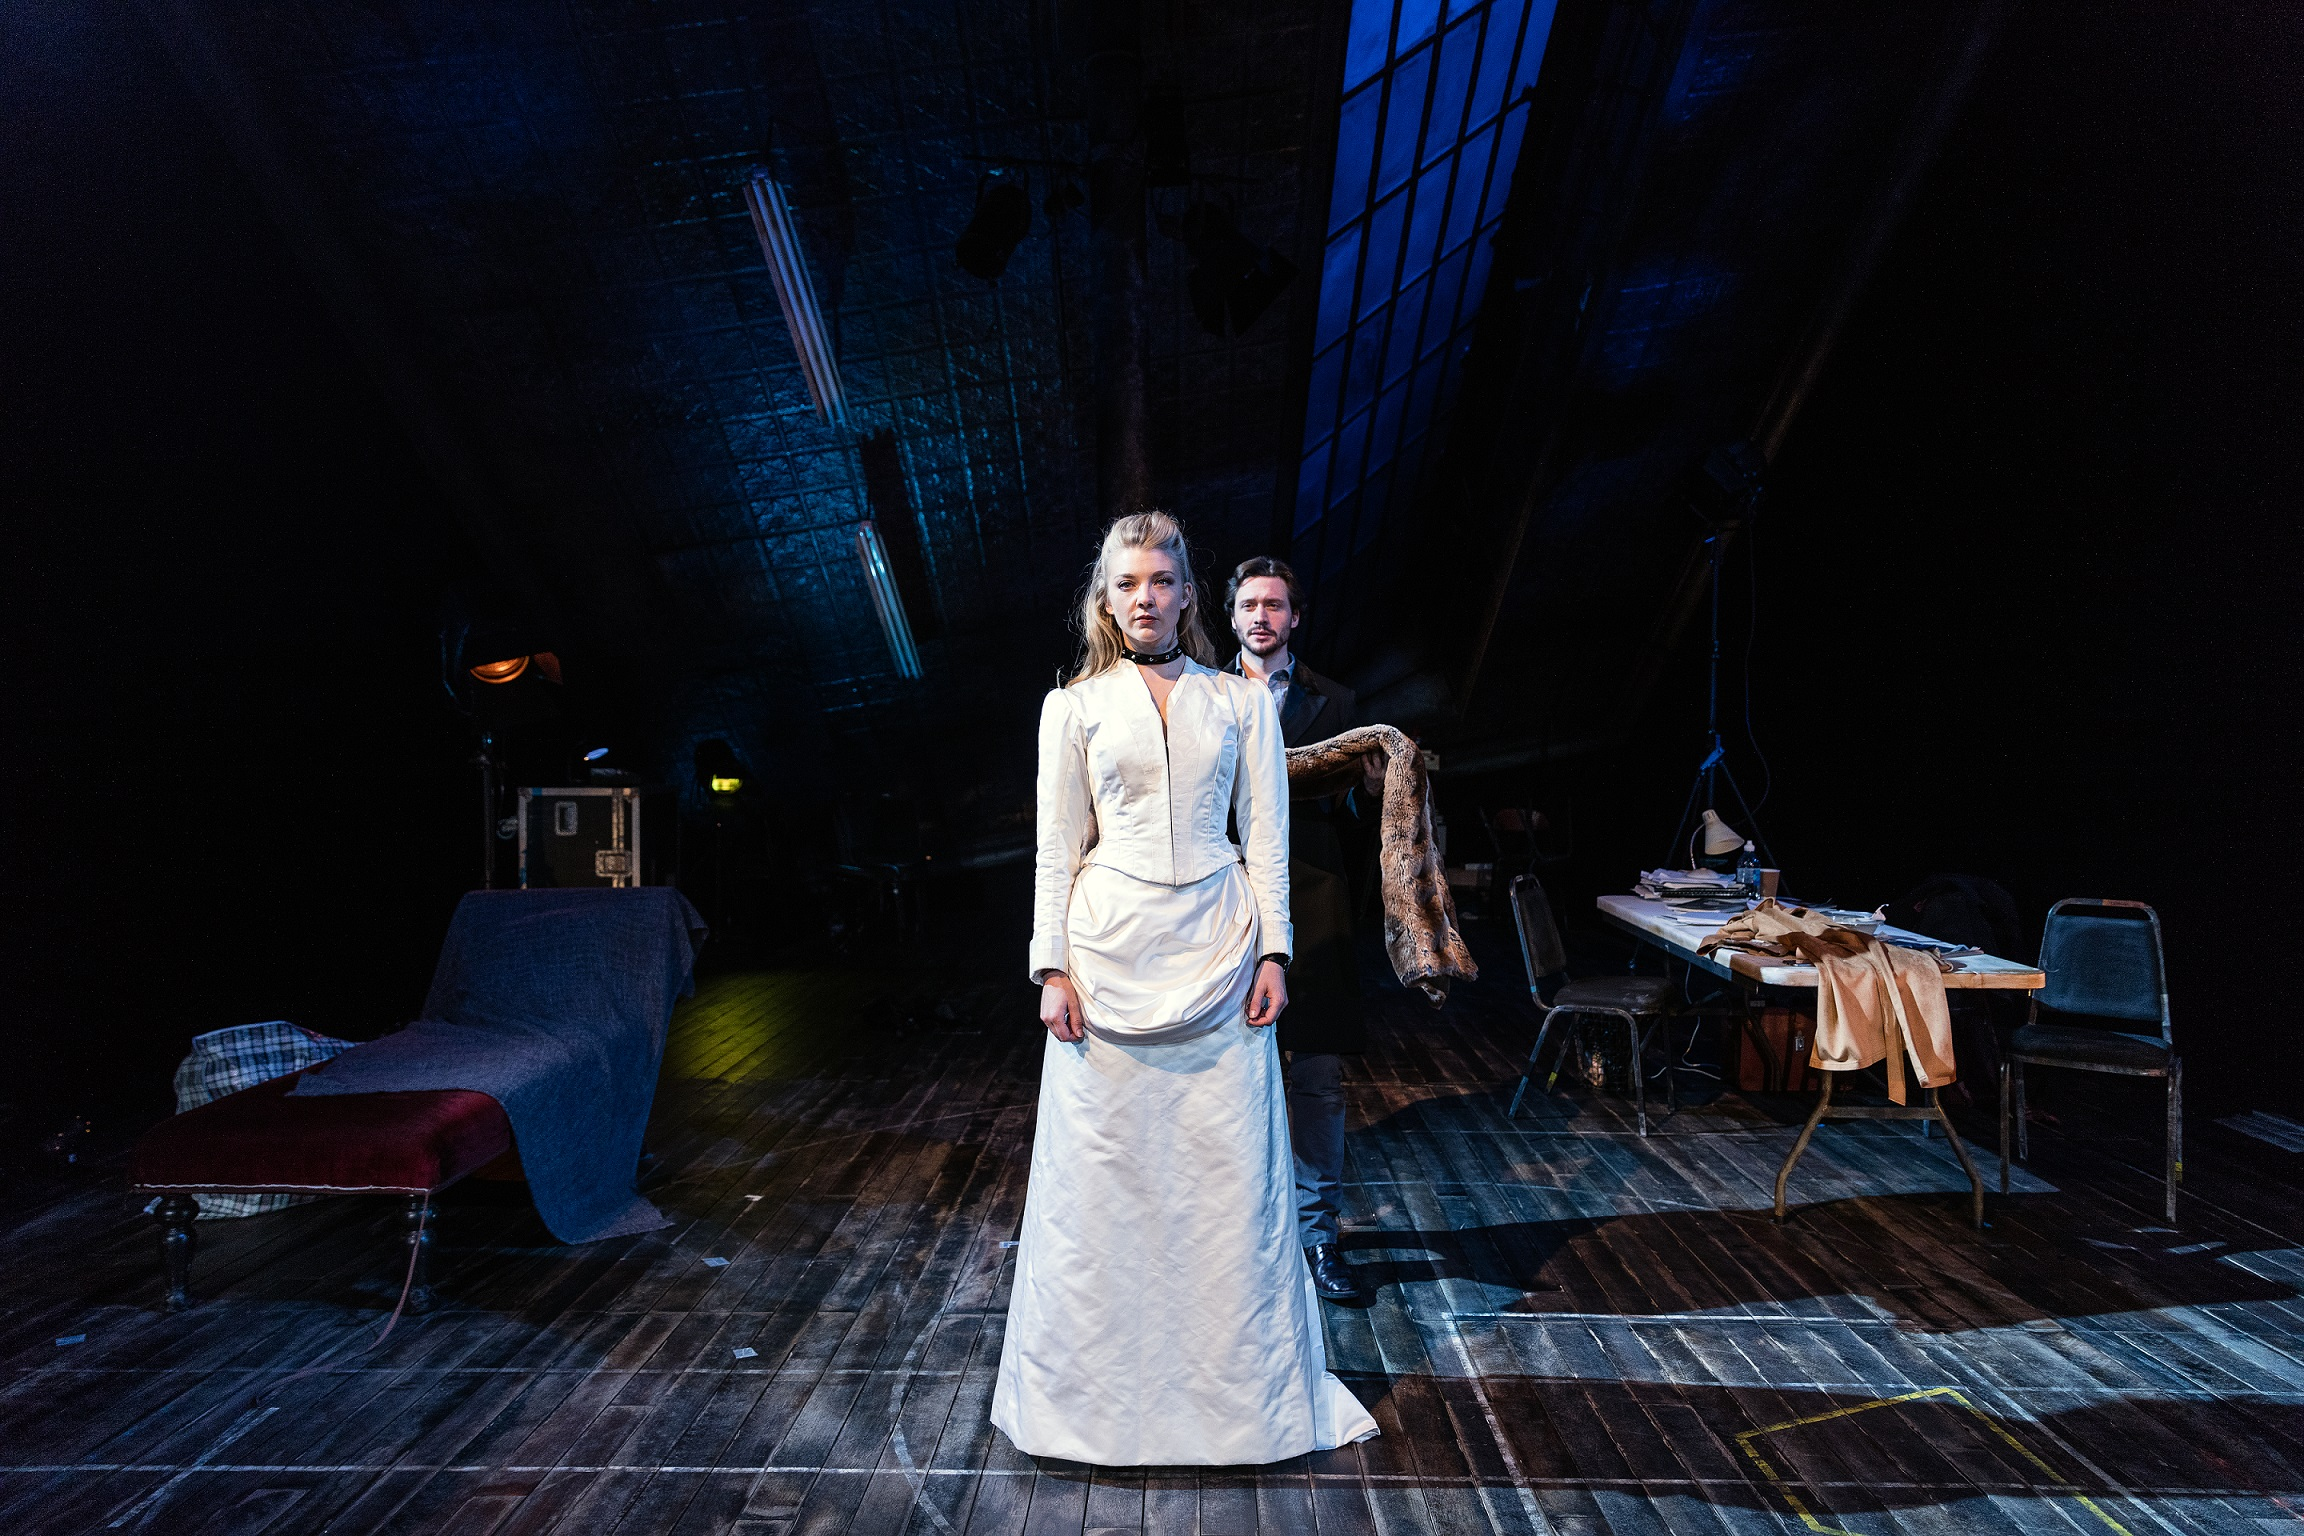 Natalie-Dormer-and-David-Oakes-in-Venus-in-Fur-at-Theatre-Royal-Haymarket.-Credit-Darren-Bell.jpg